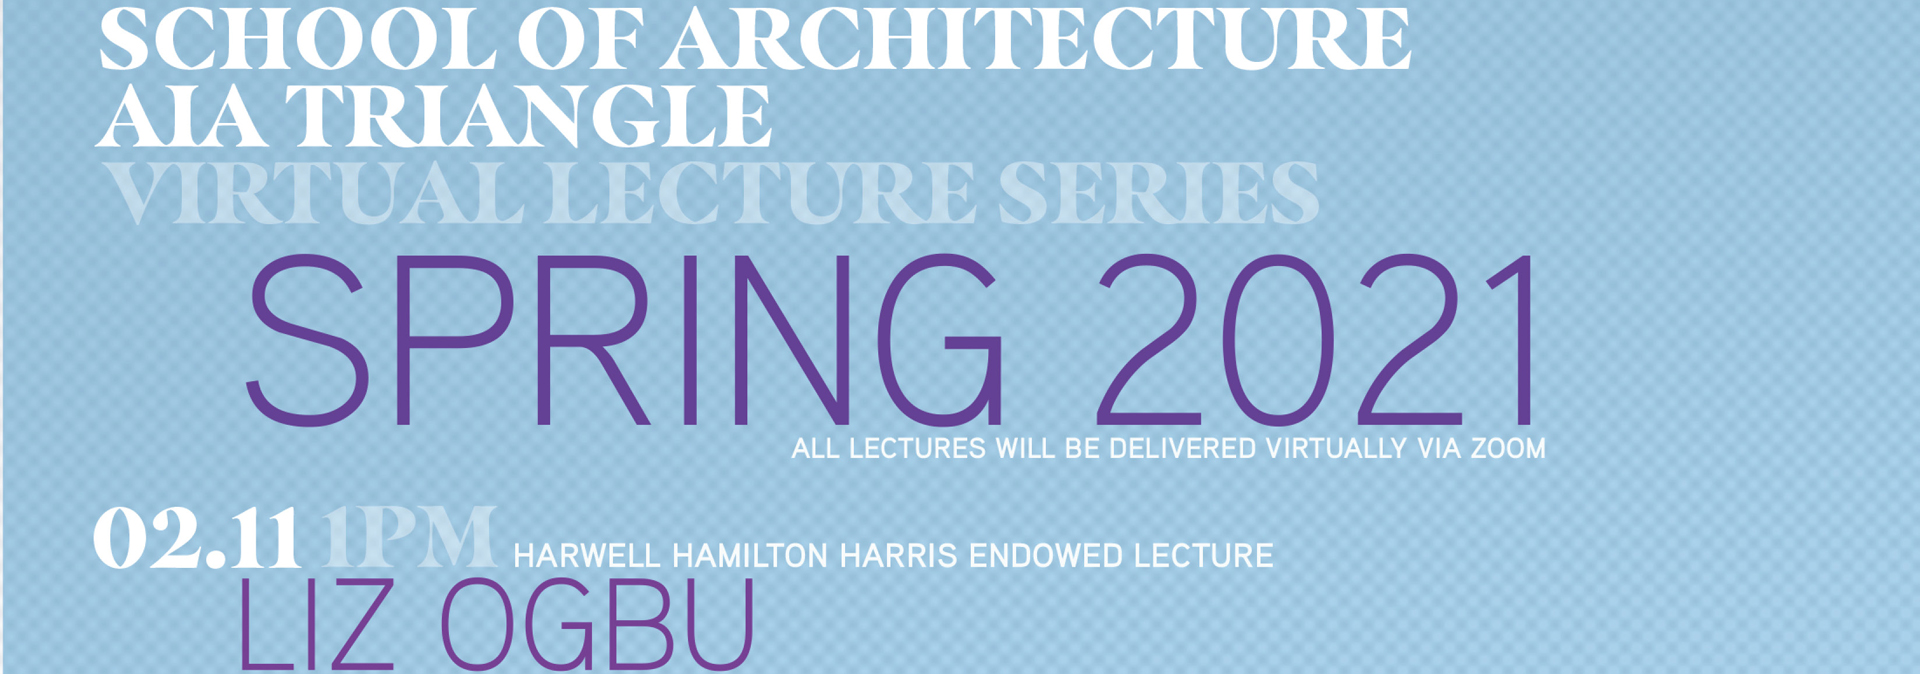 Join us for a joint lecture with AIA Triangle featuring Liz Ogbu, a designer, urbanist and spatial justice activist. CE Credits pending approval.